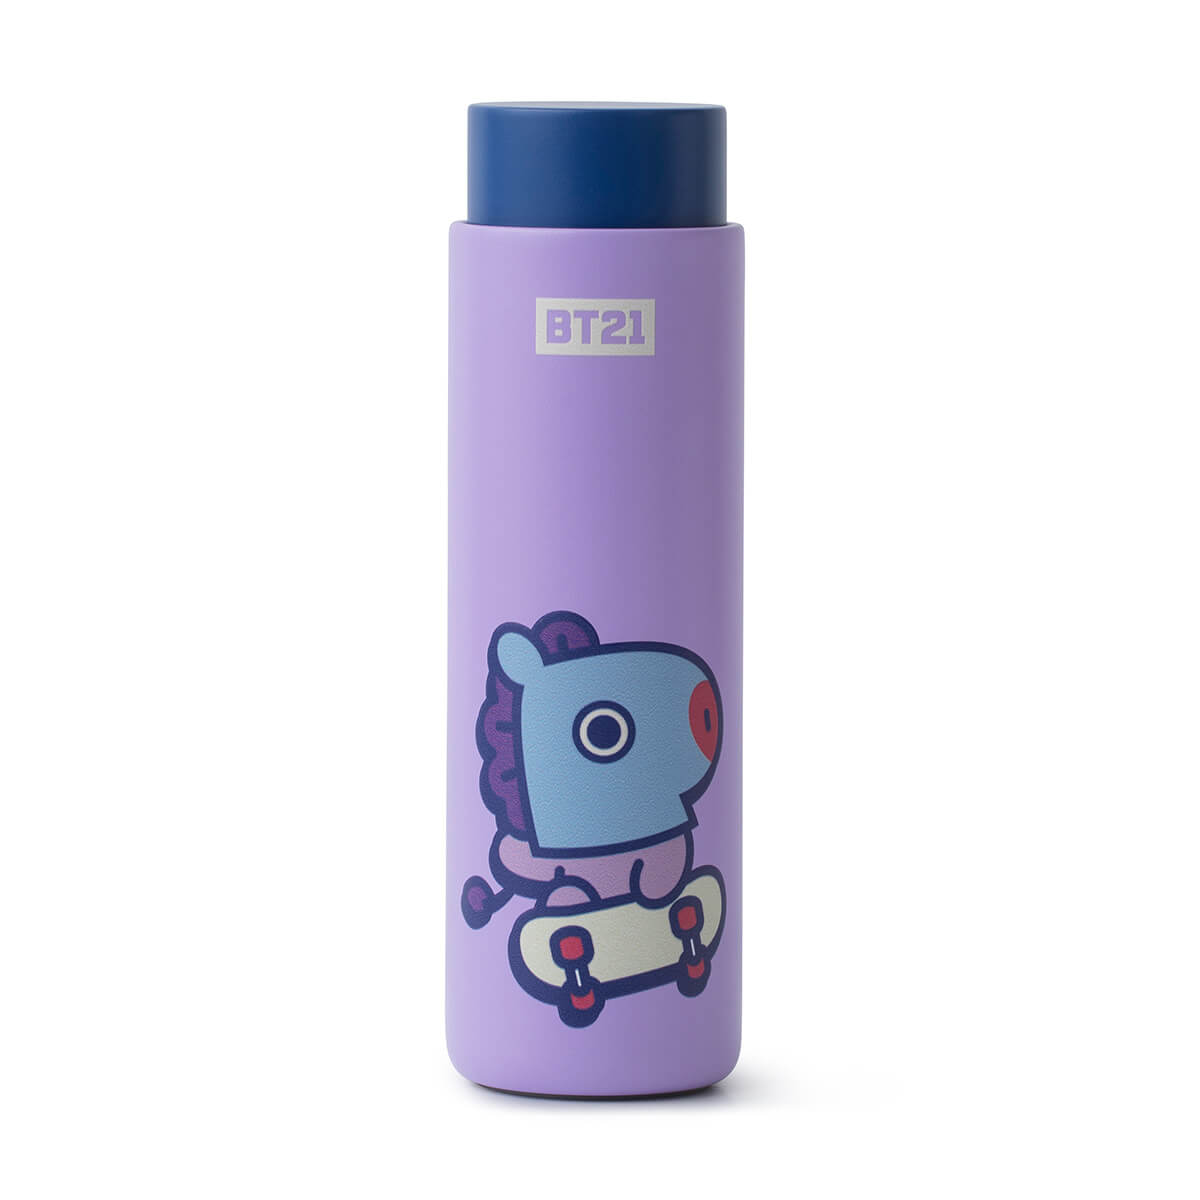 BT21 MANG Lock & Lock Slim Tumbler + Bag Set